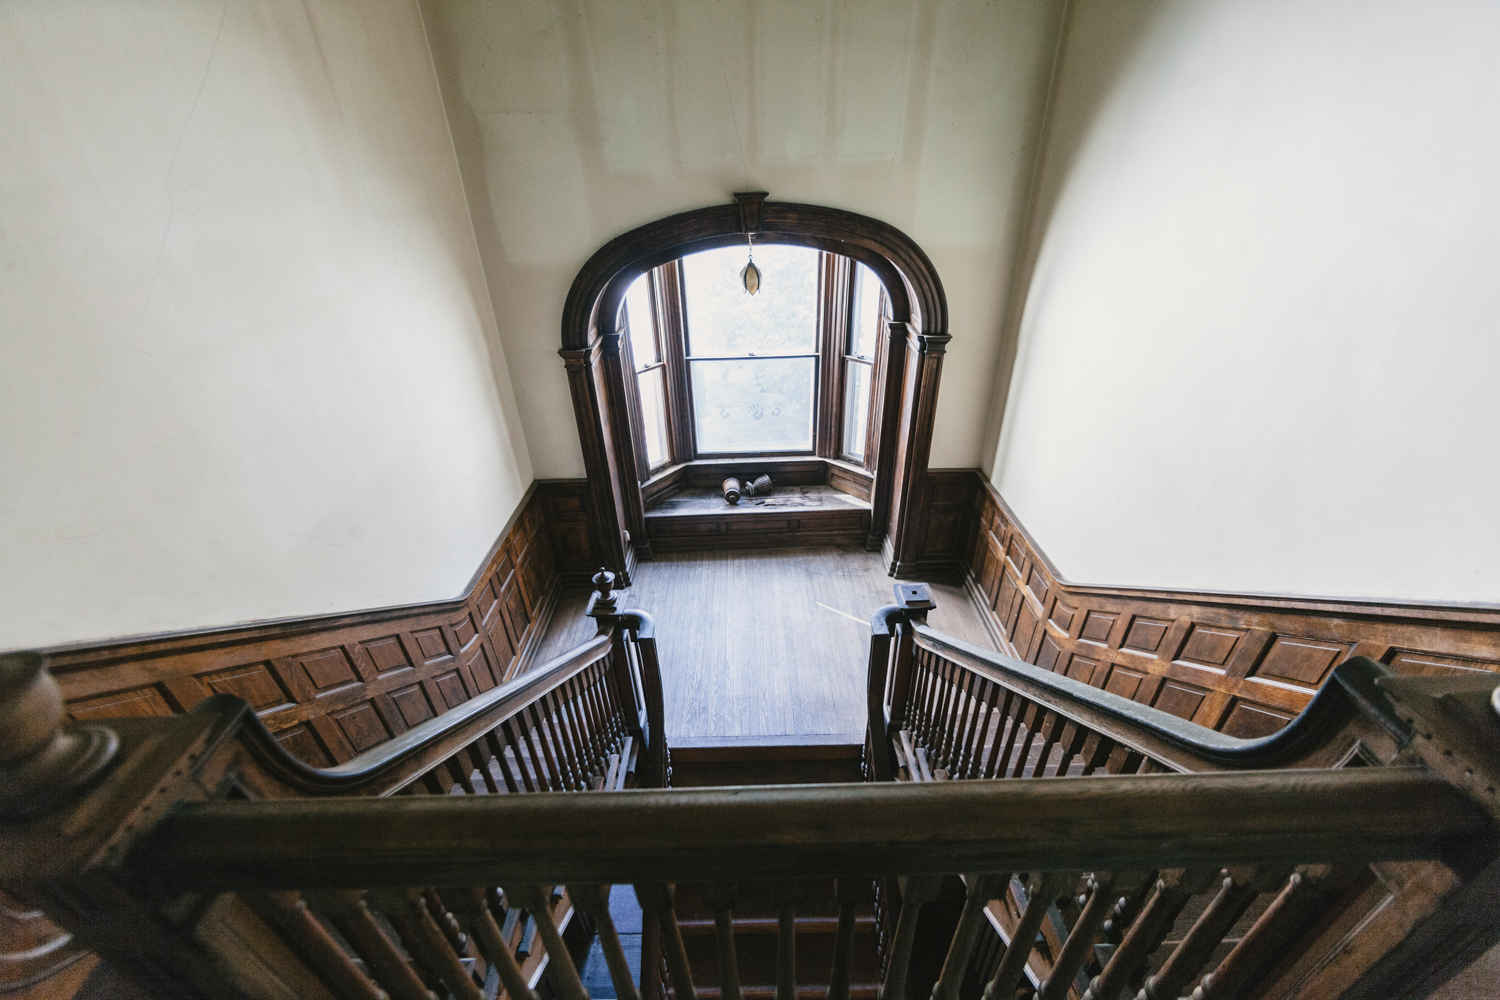 The split staircase down to the window seat overlooking the back garden then uniting to enter the foyer